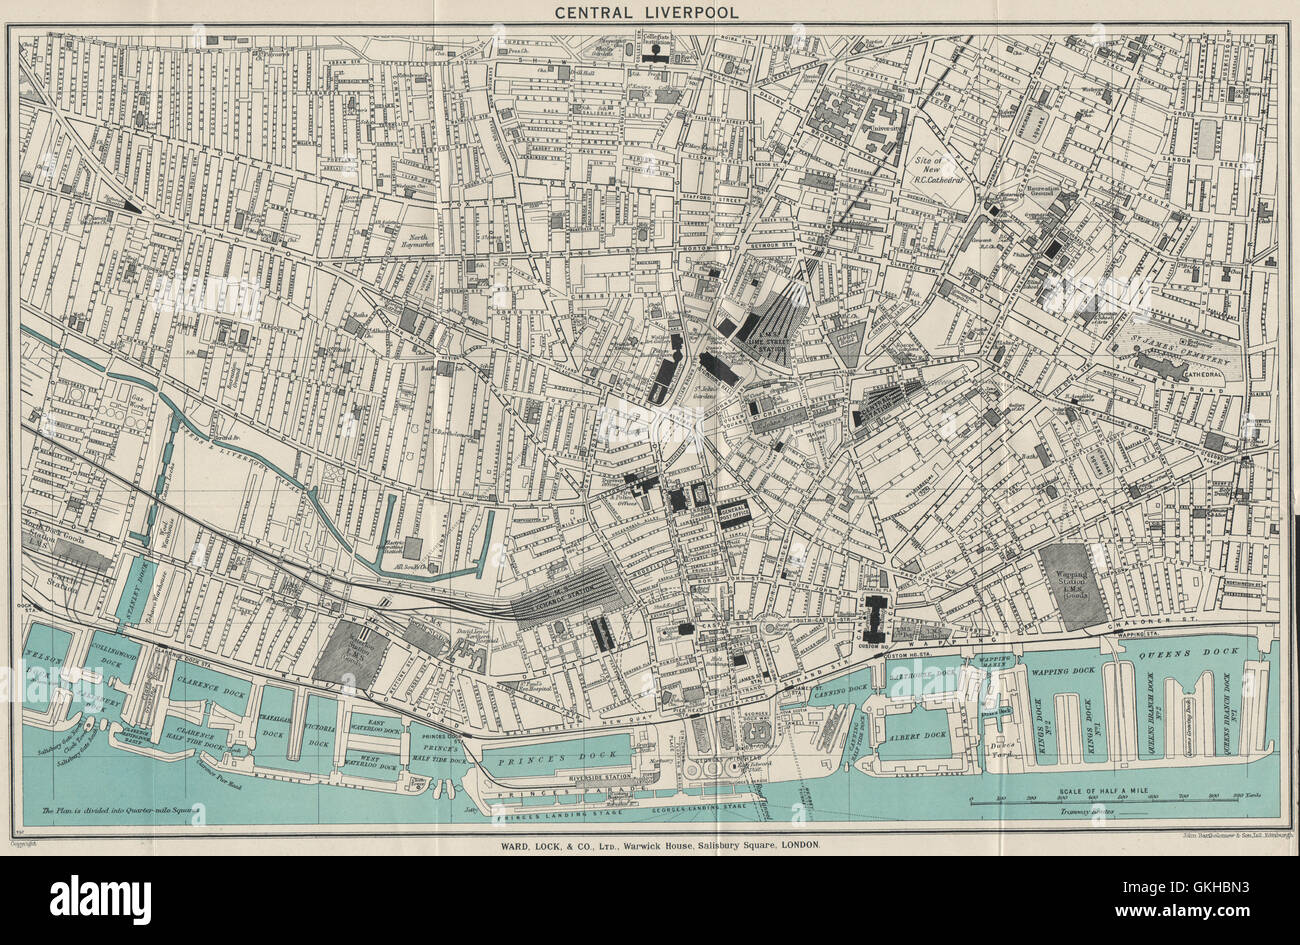 CENTRAL LIVERPOOL vintage town/city plan. Liverpool. WARD LOCK, 1936 old map - Stock Image